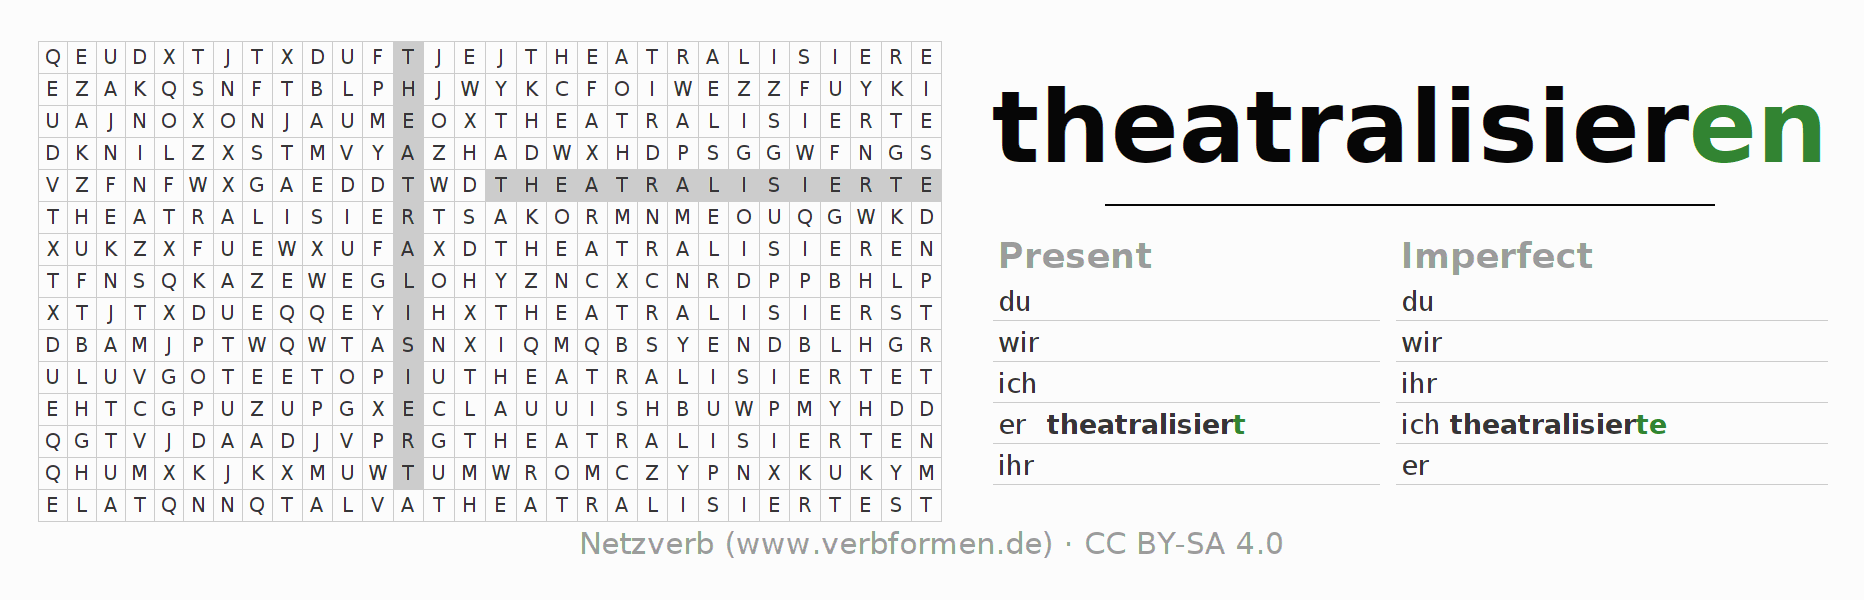 Word search puzzle for the conjugation of the verb theatralisieren